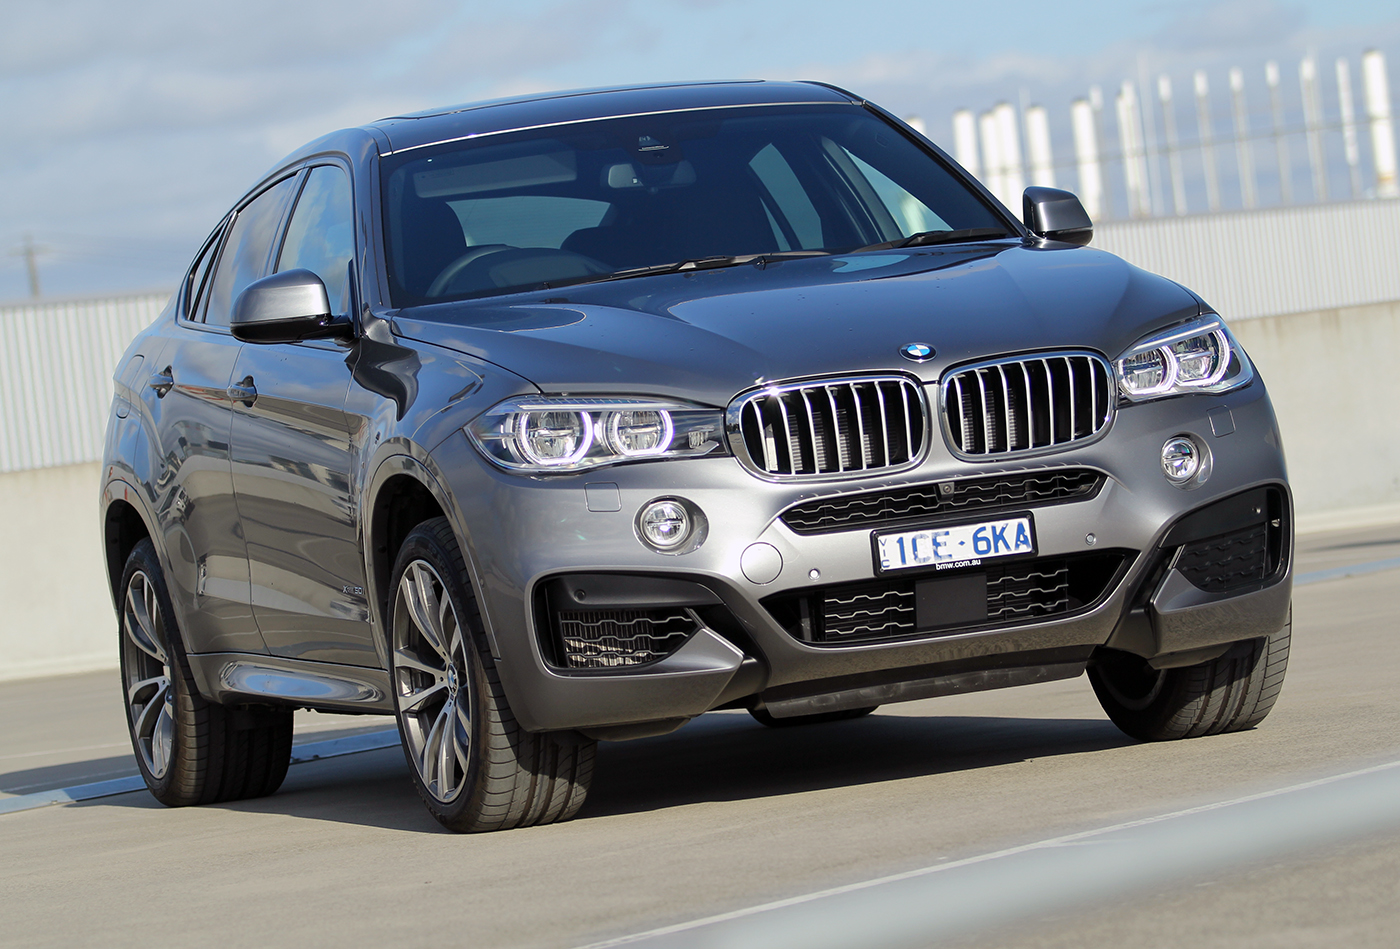 BMW X6 M Sport Review: 2015 xDrive50i - Brawn, With More Brawn